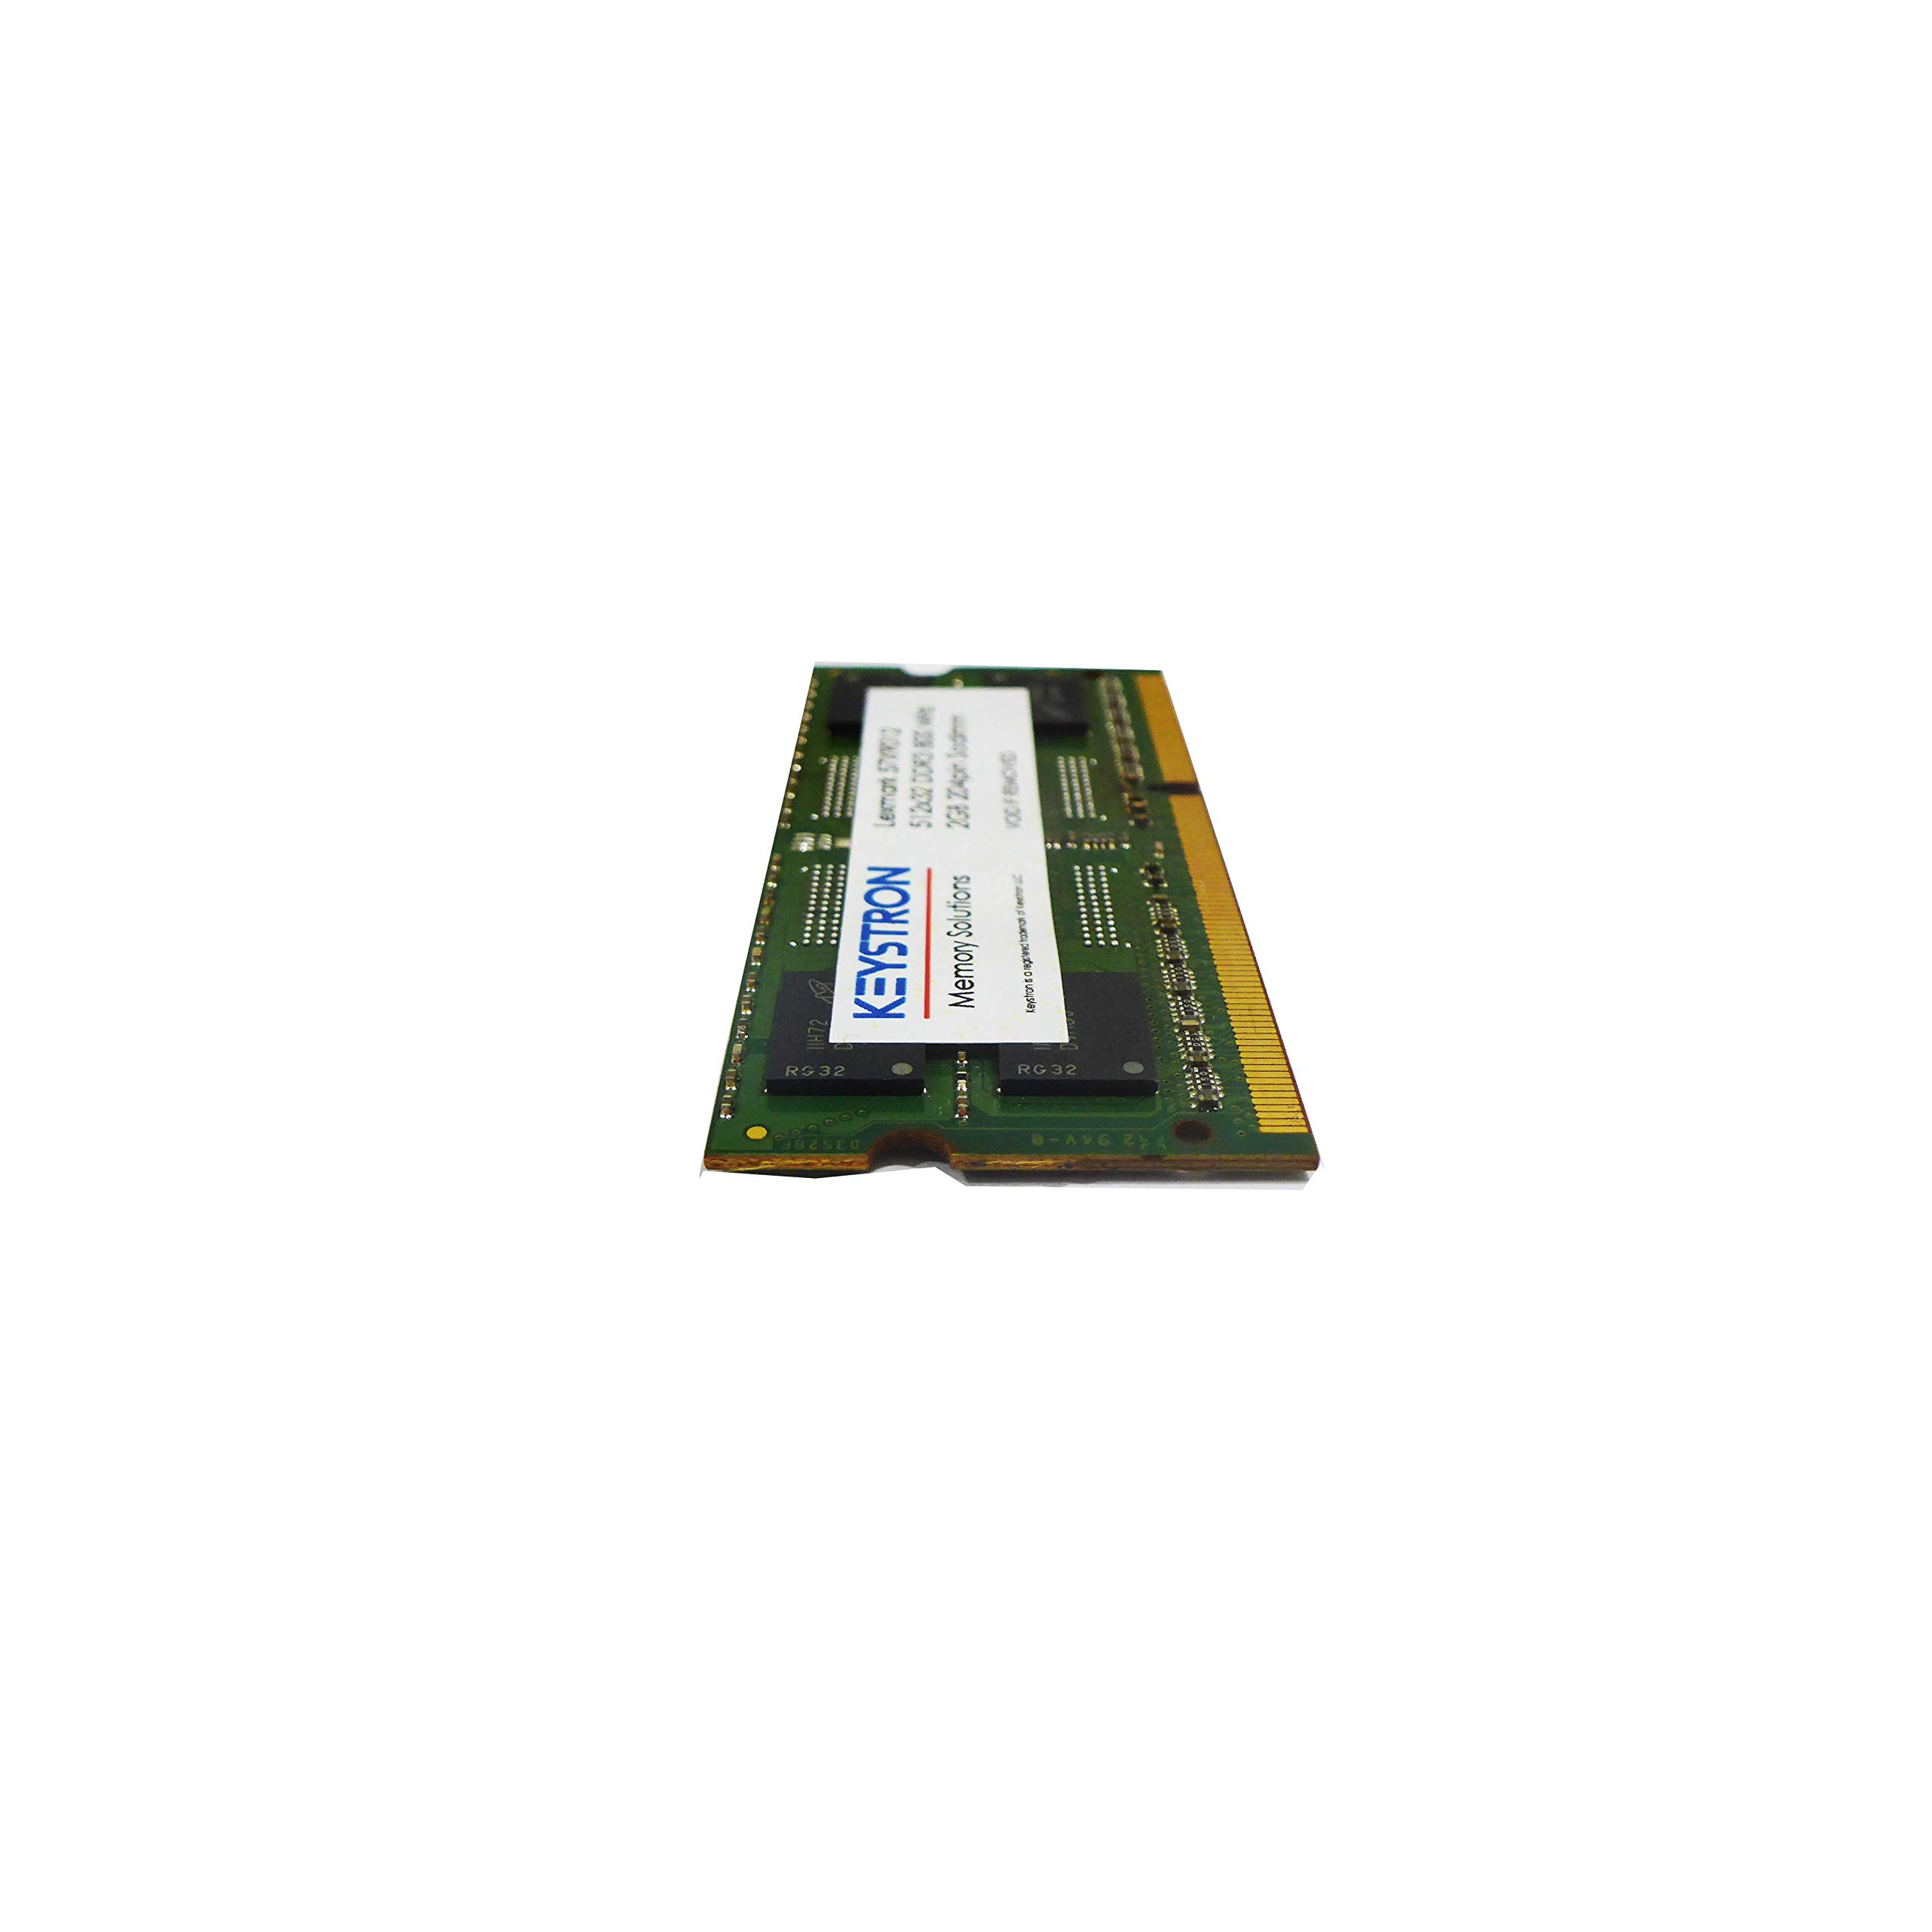 2GB Memory Upgrade for Lexmark Printer CX Series Printers